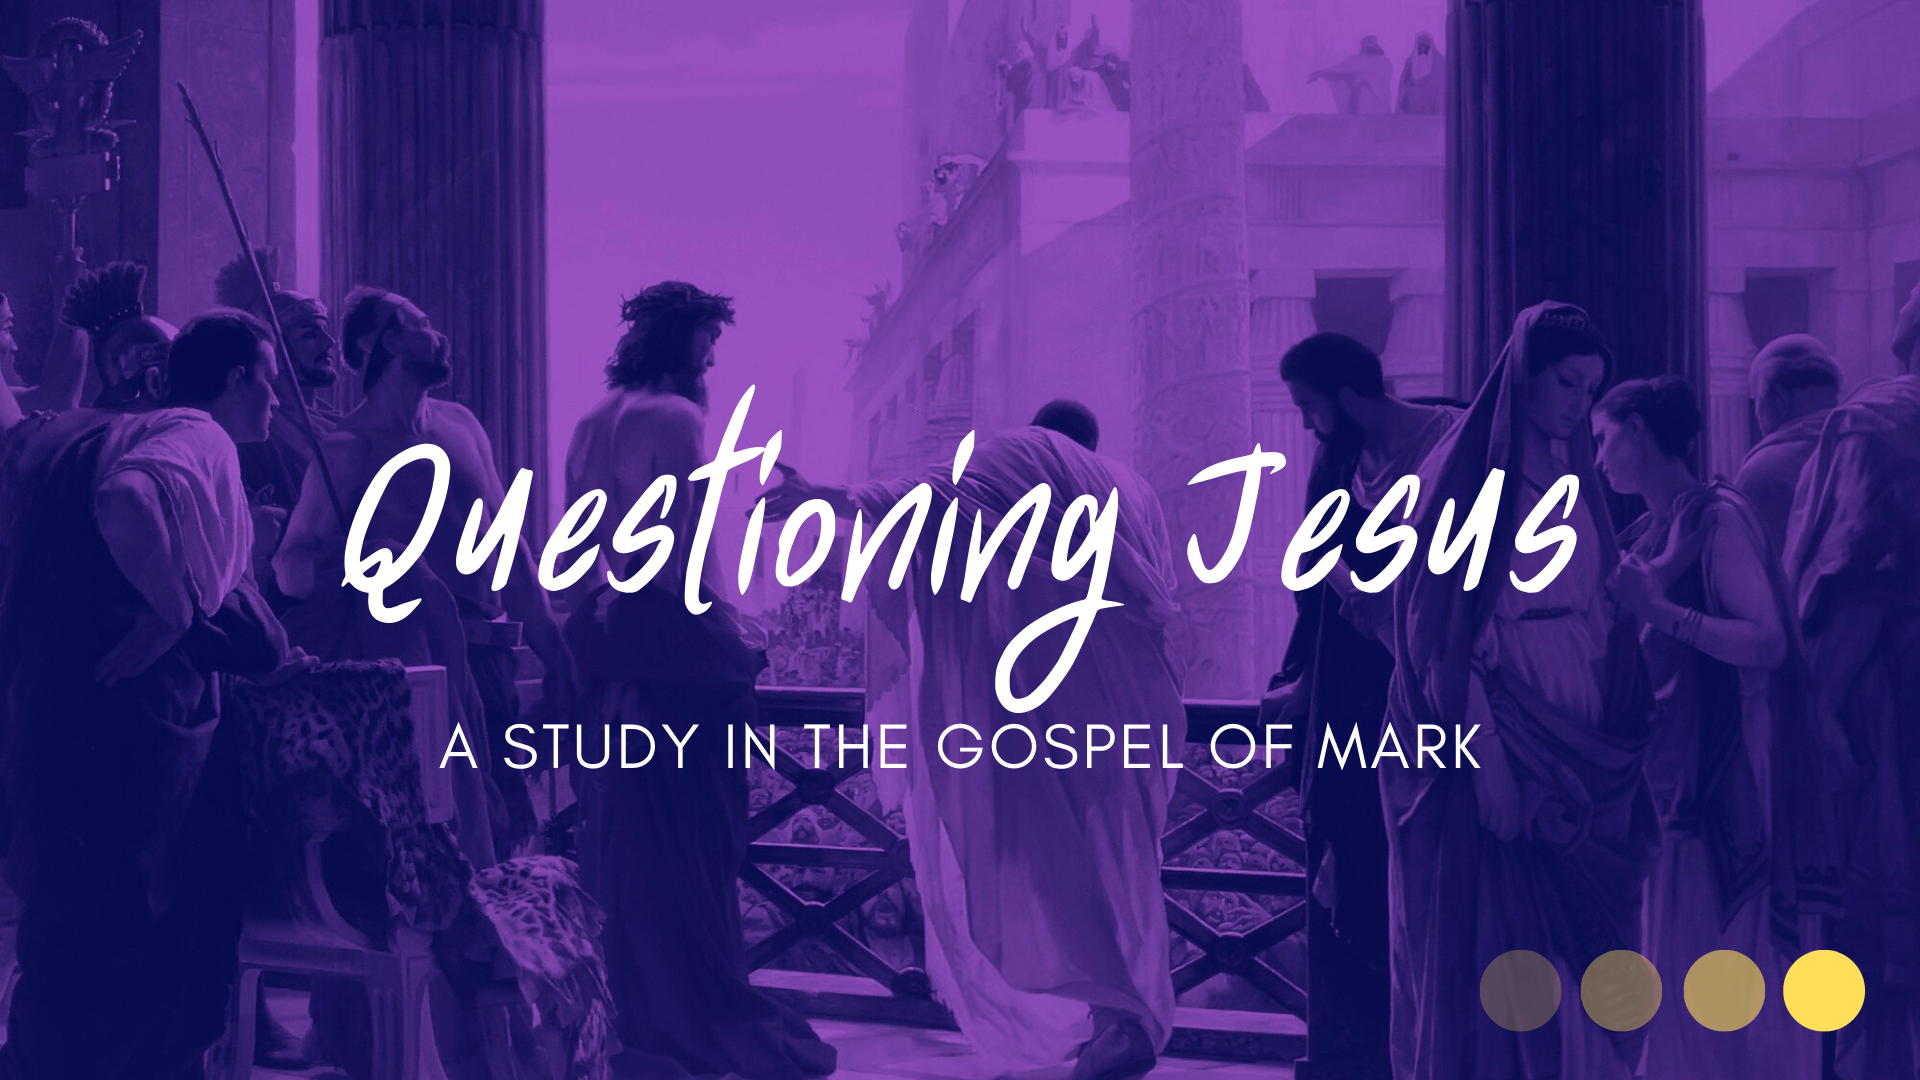 SERMON – Questioning Jesus: Mark 2:1-12, 23-27; 3:1-6